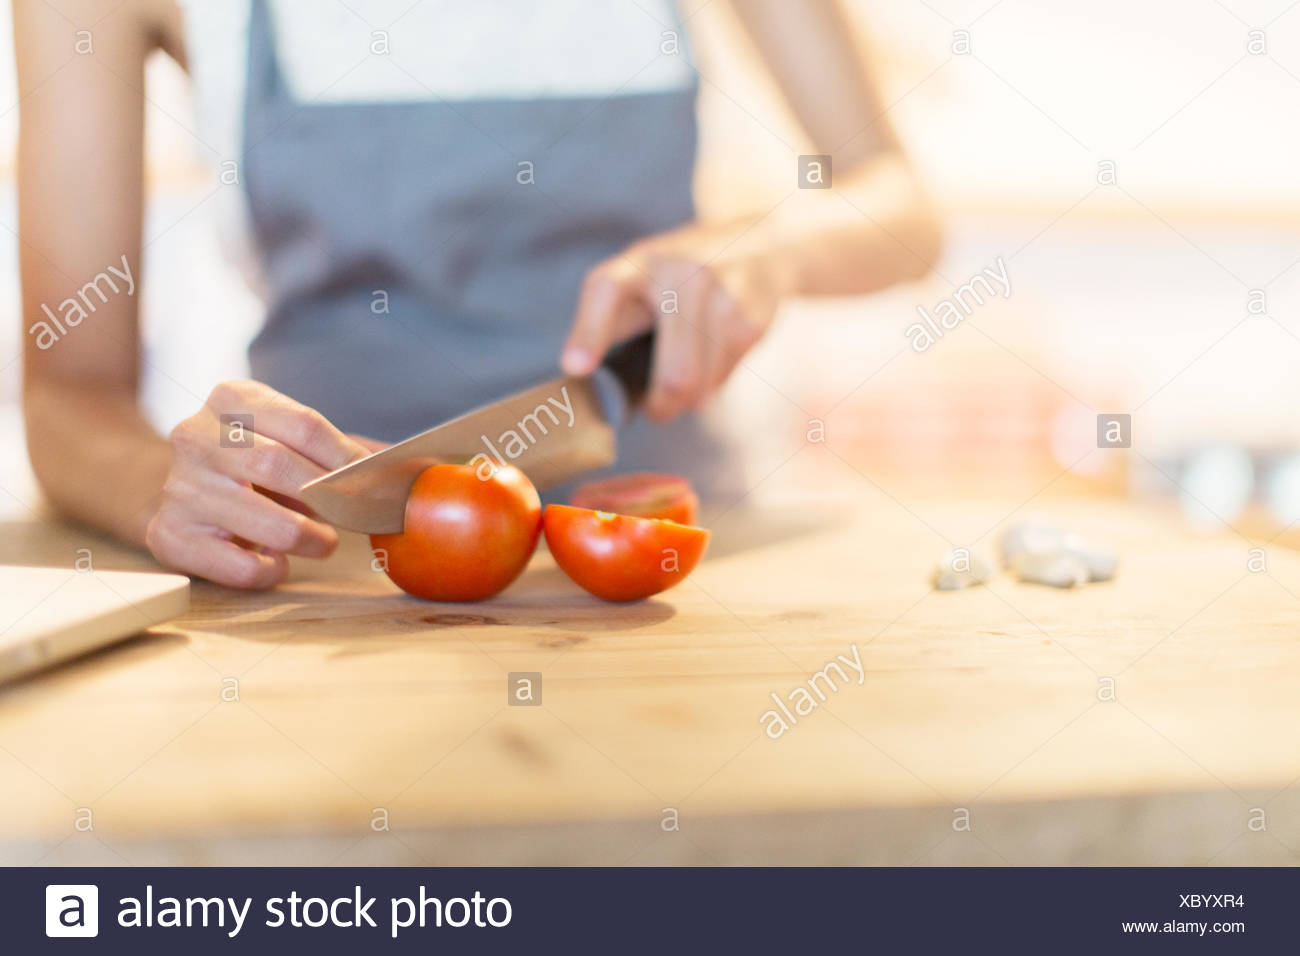 Woman chopping vegetables in kitchen - Stock Image